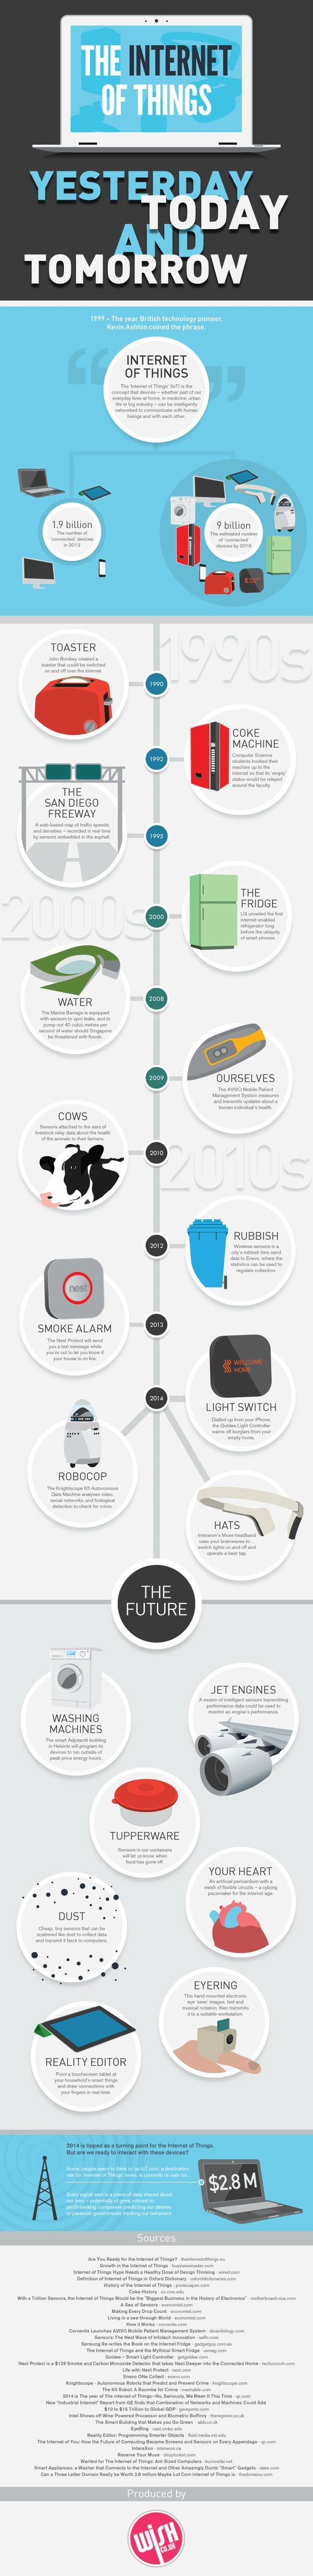 The Internet of Things: Yesterday, Today and Tomorrow #infographic #IOT #Technology